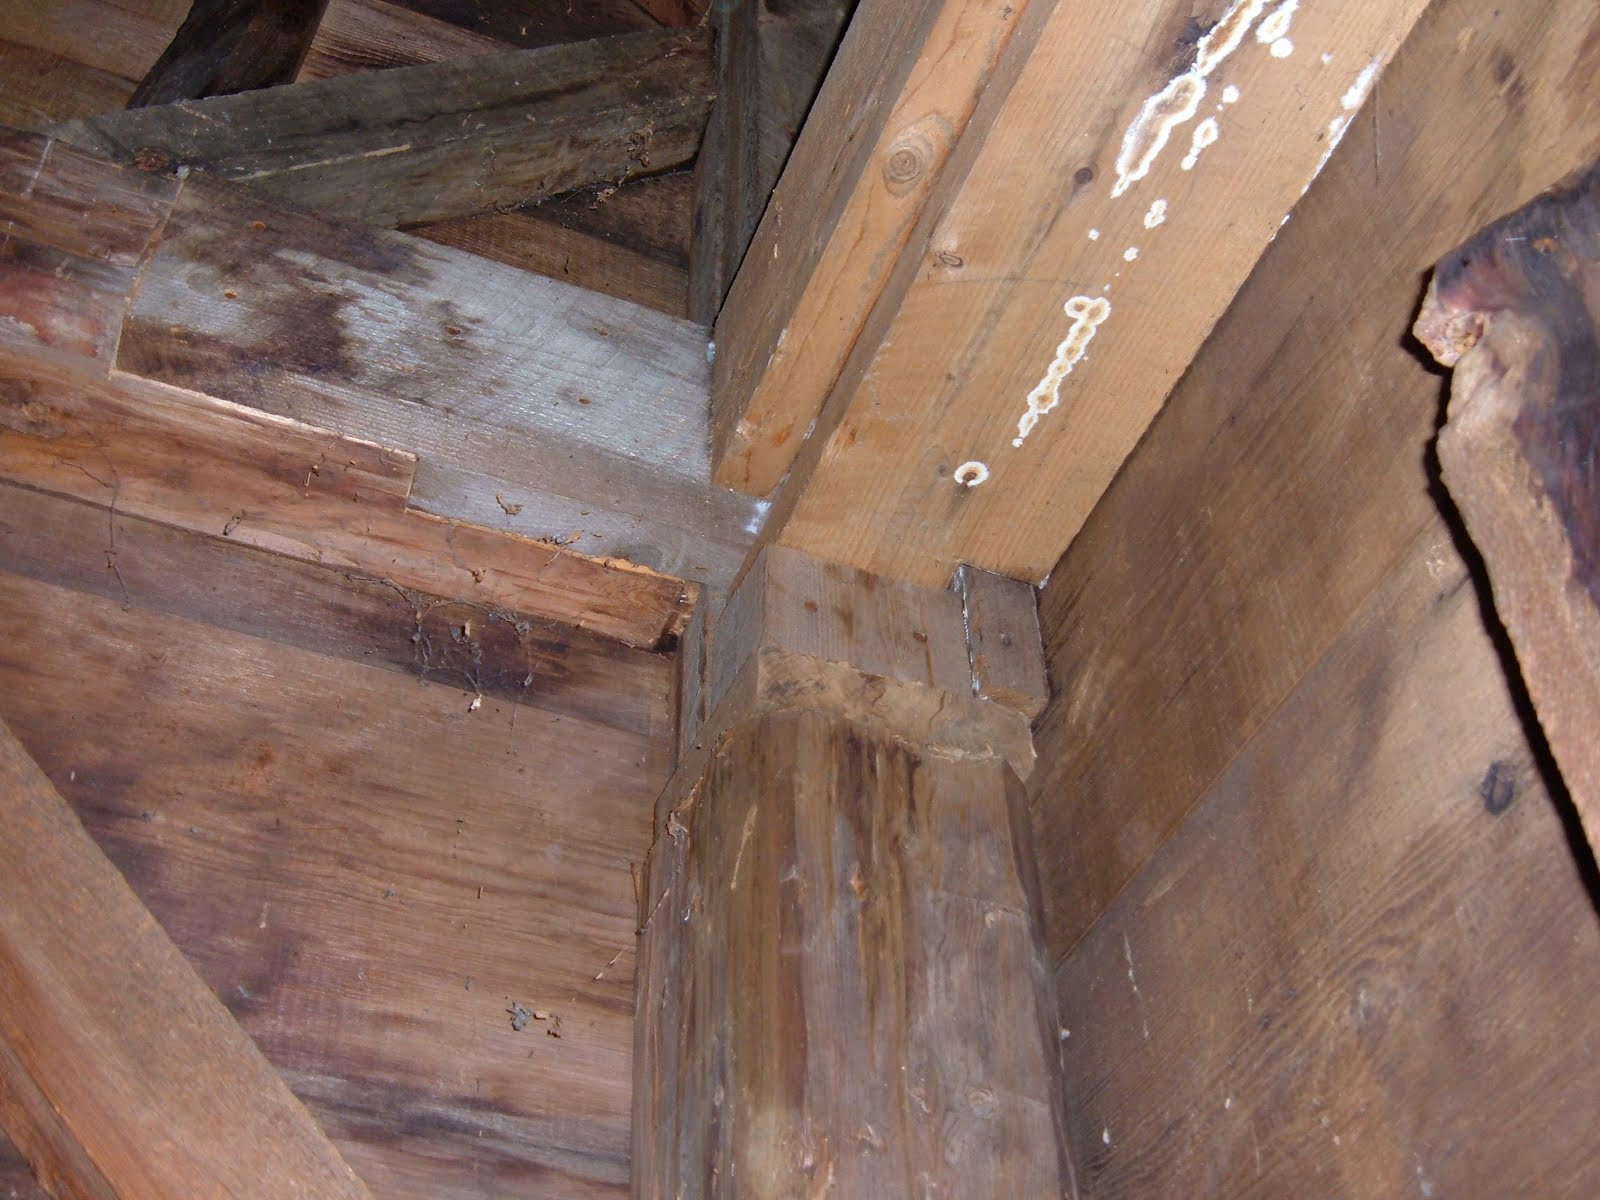 Bad repairs done several years before were also beginning to rot and fail.